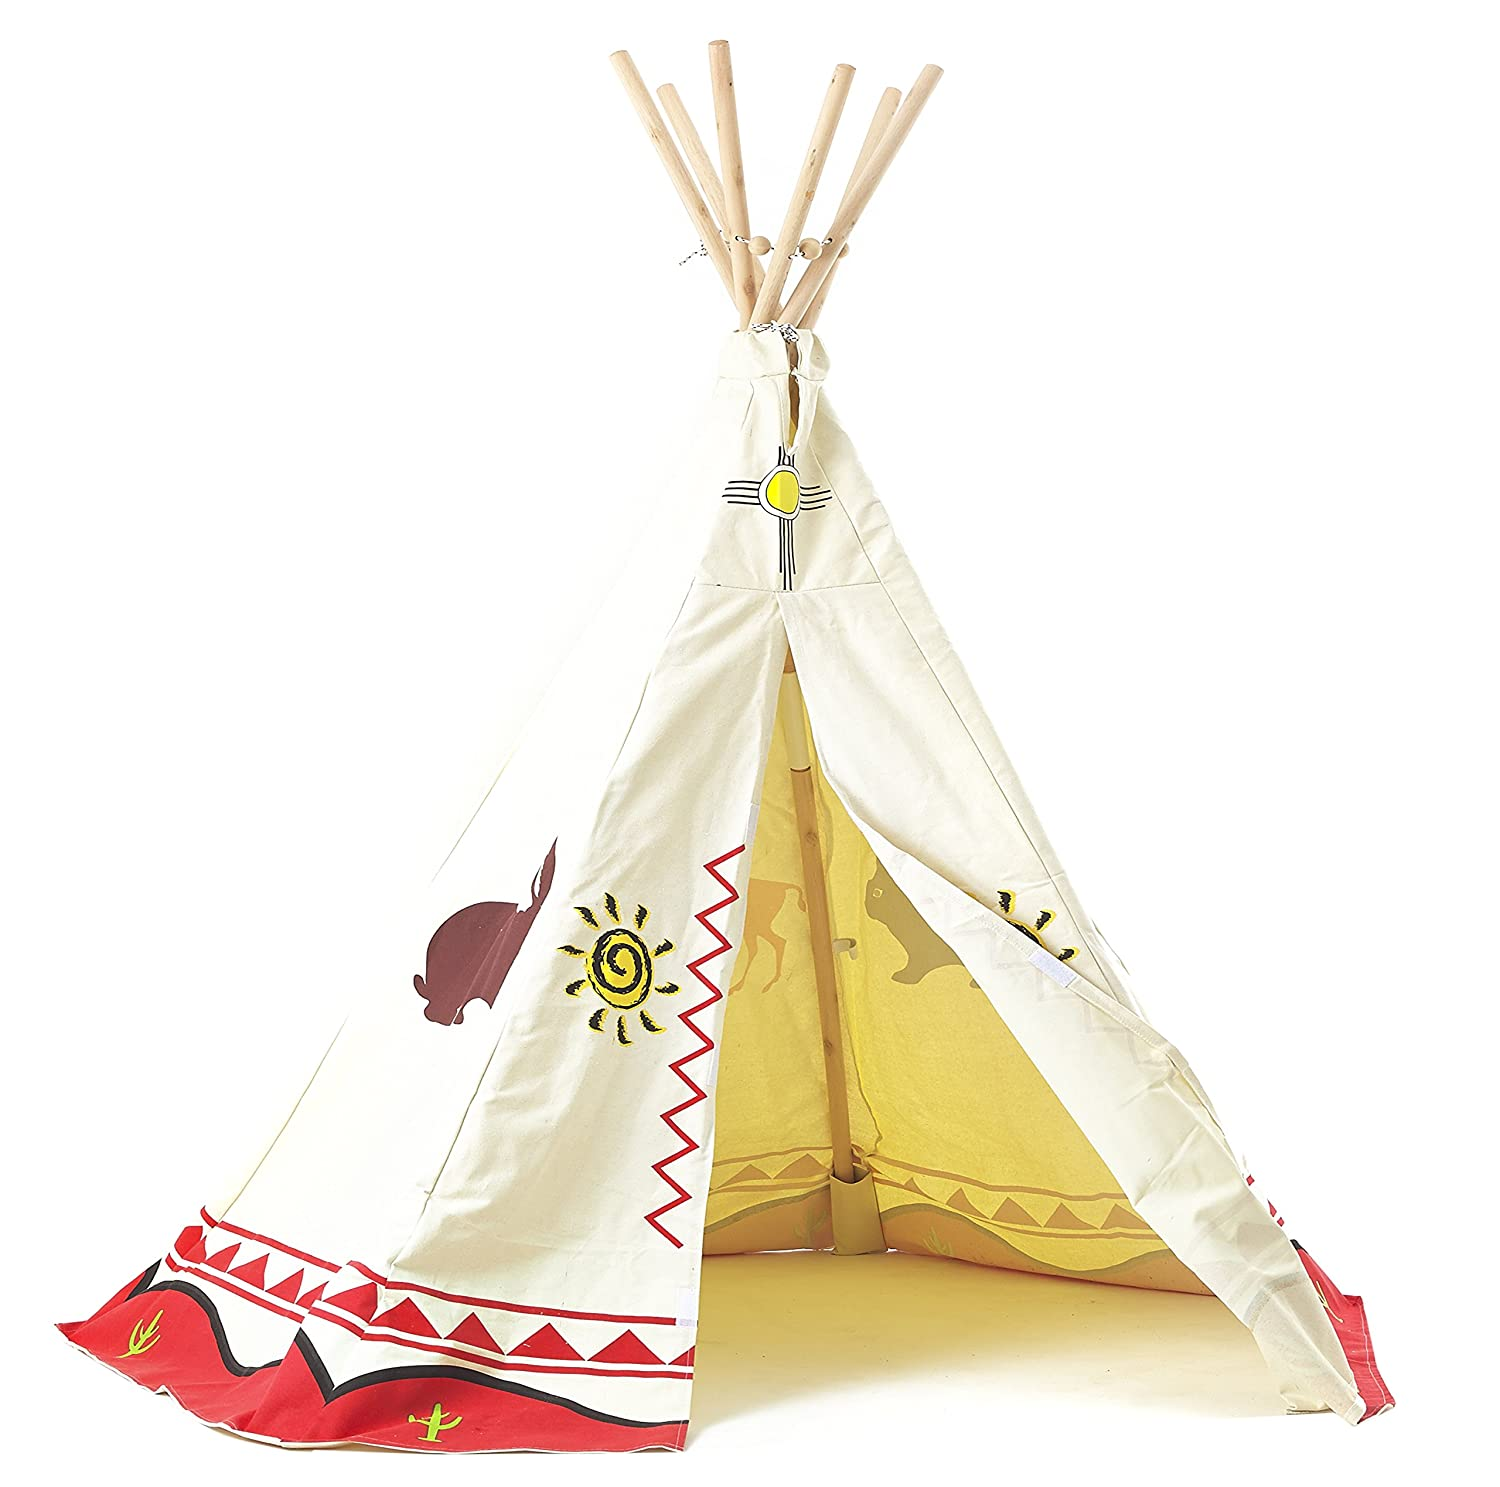 Amazon.com Garden Games ltd Childrenu0027s Wigwam/Teepee Play Tent - Traditional Wild West Cowboys and Indians design Toys u0026 Games  sc 1 st  Amazon.com & Amazon.com: Garden Games ltd Childrenu0027s Wigwam/Teepee Play Tent ...